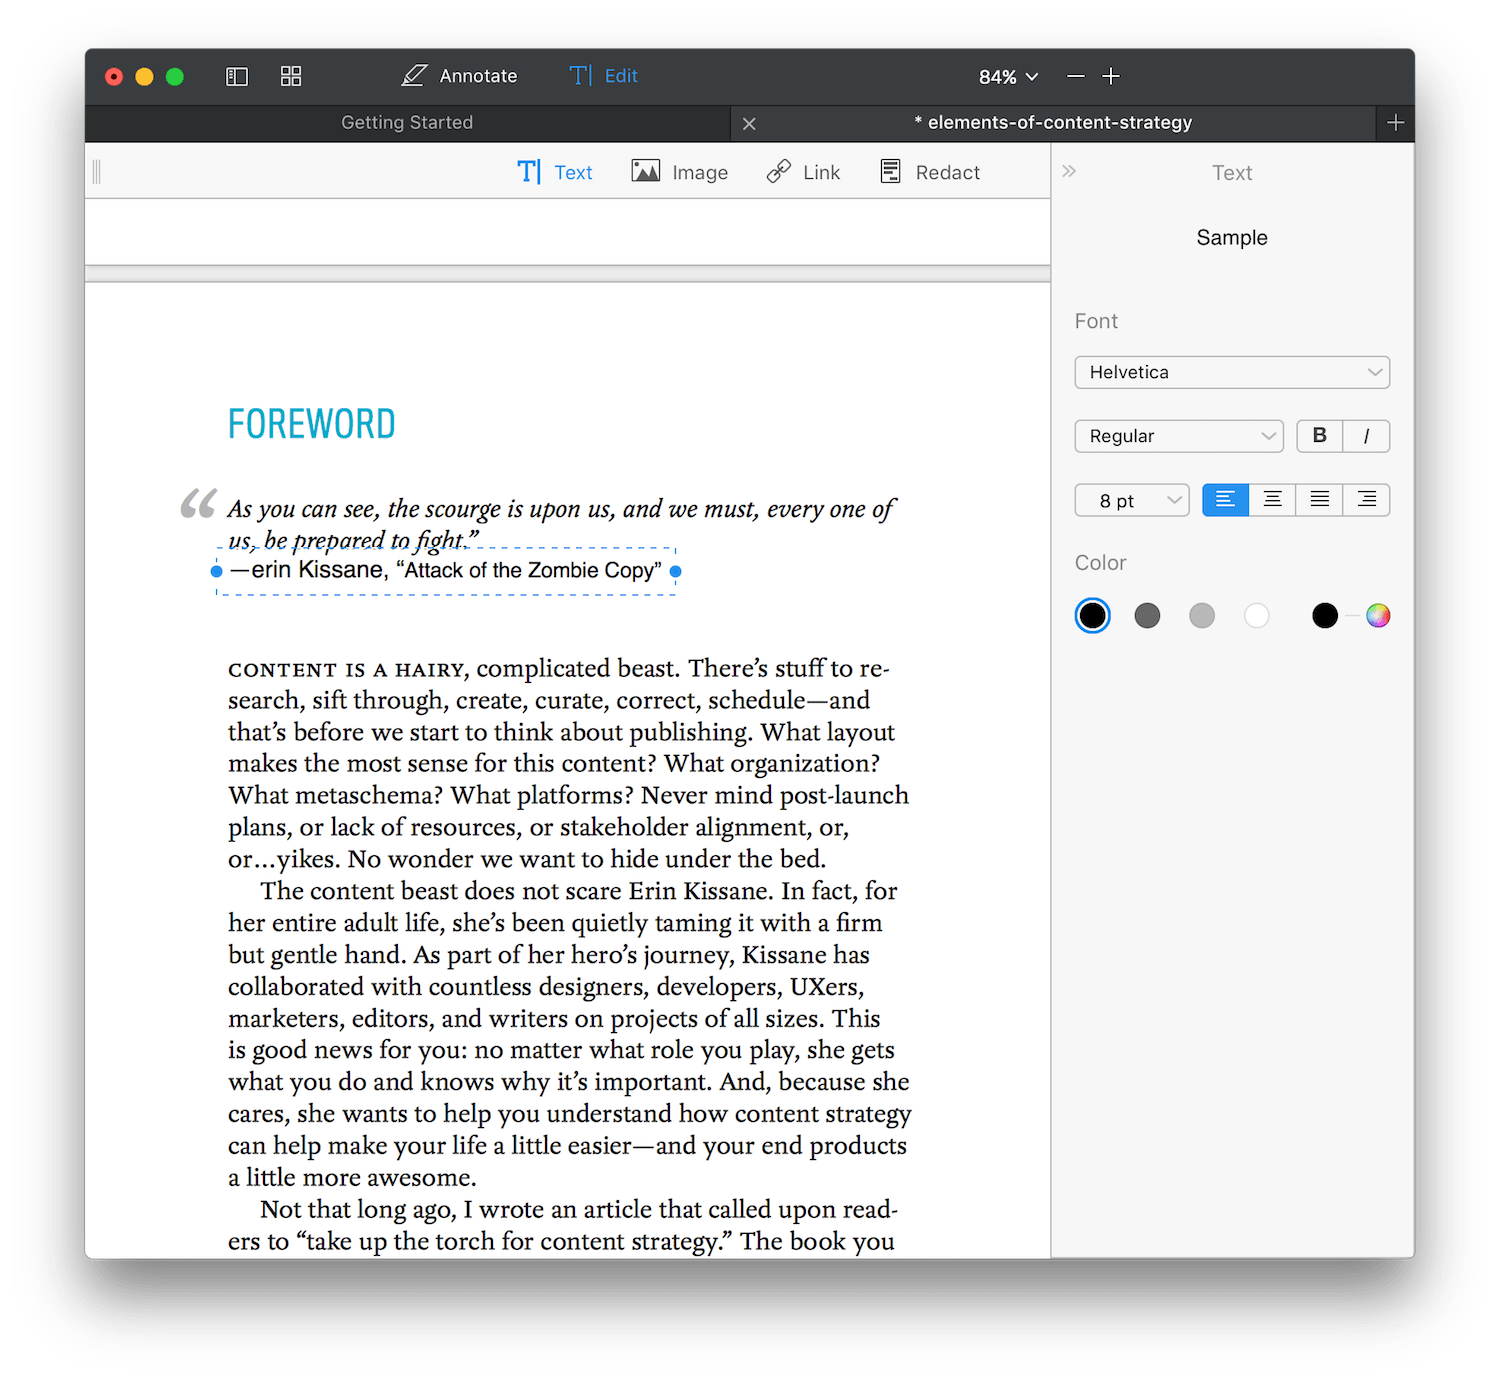 How To Edit Text In A Pdf File With Acrobat Xi Just Tap The Edit Button On  The Top Right, And Toolbar Will Show 4 Tools